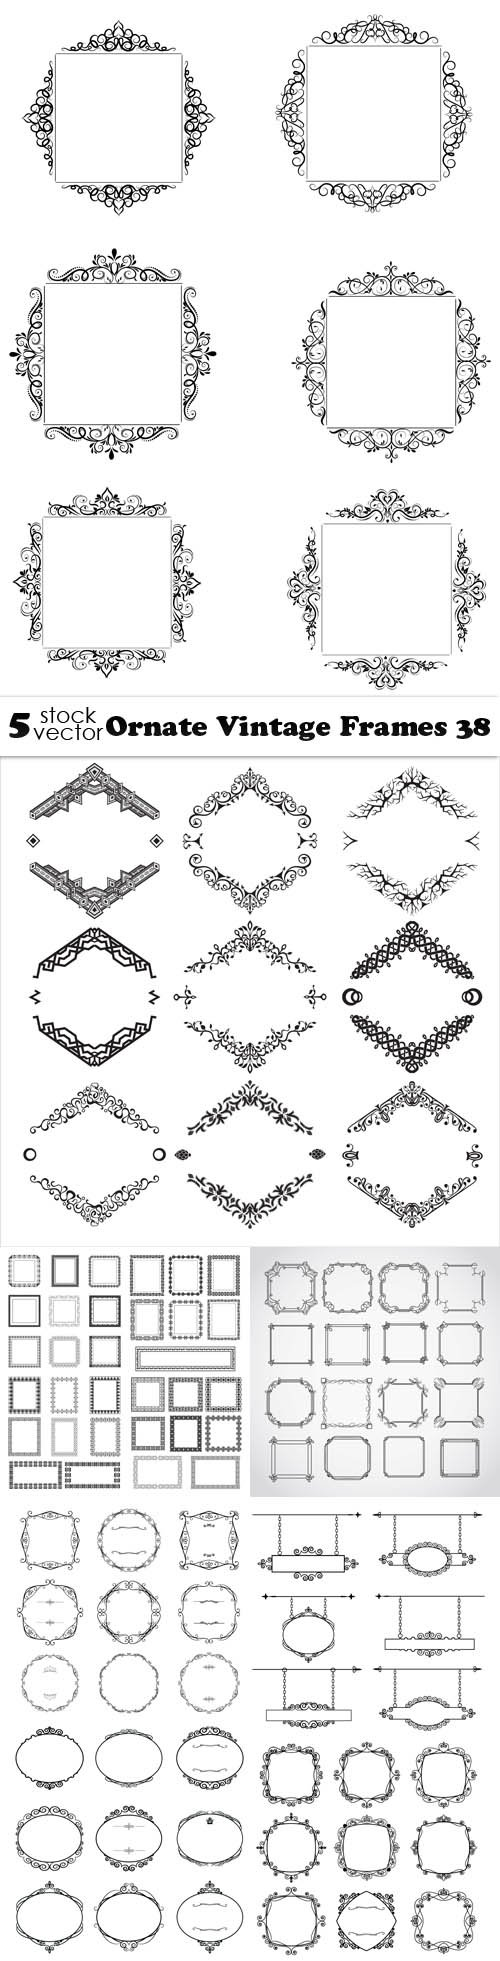 Vectors - Ornate Vintage Frames 38